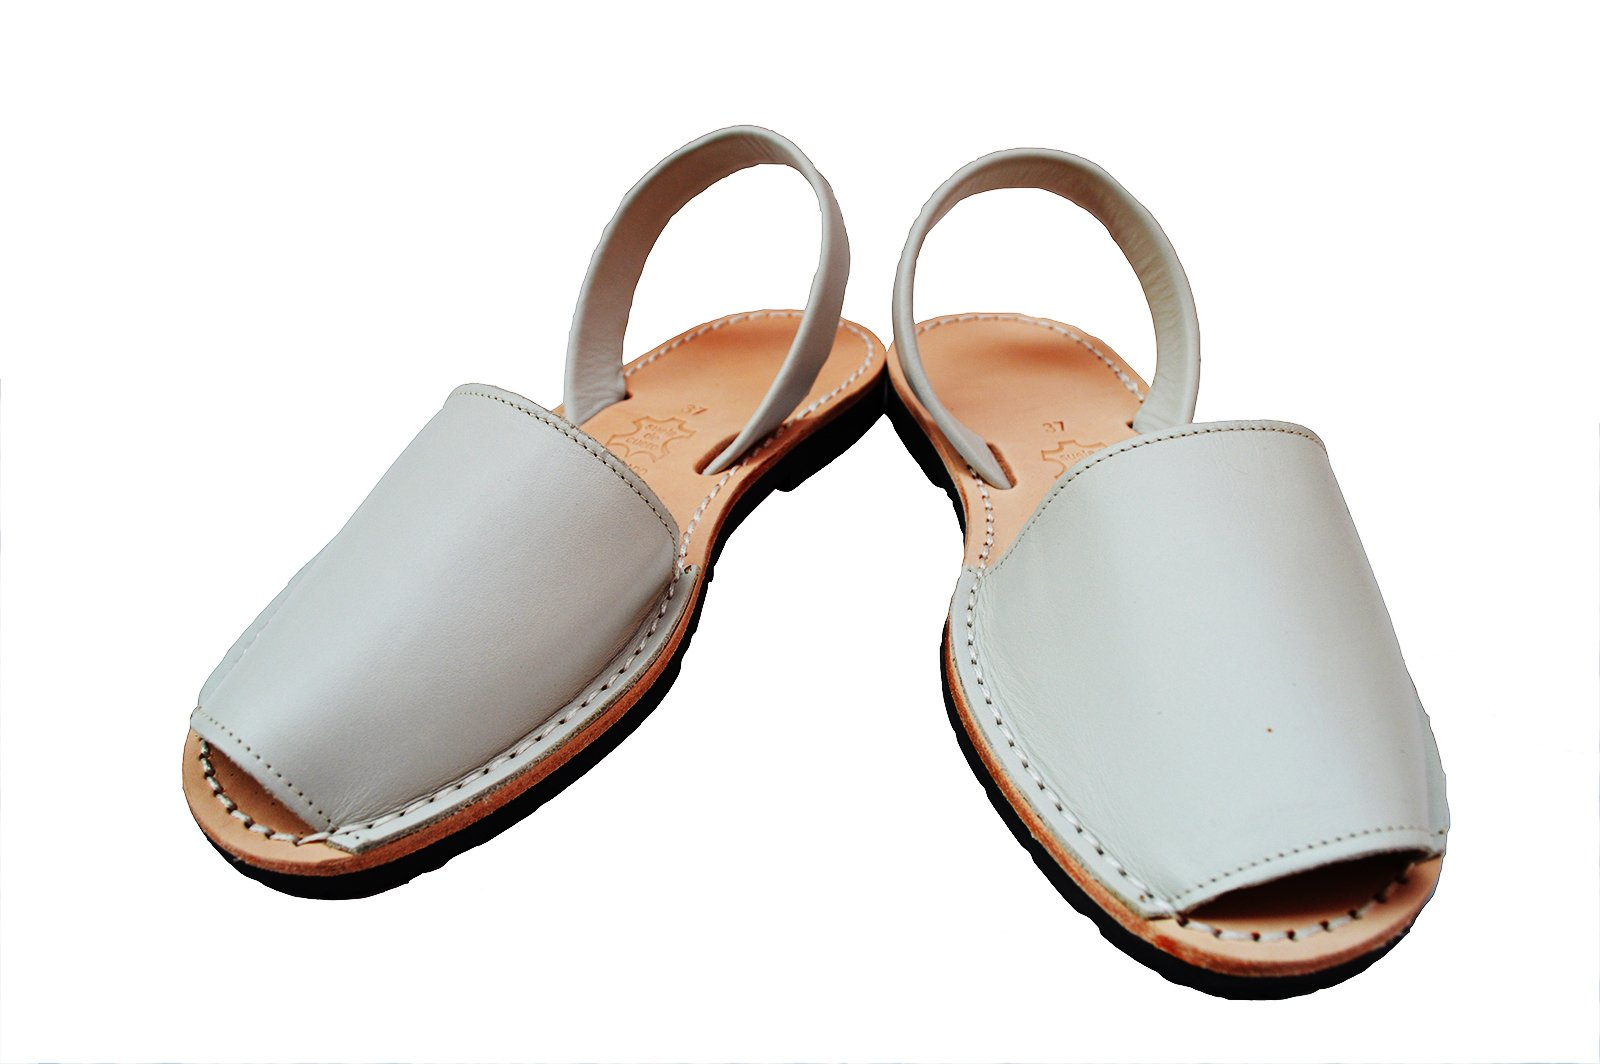 Simple Spaniard White Beach Sandals Summer Shoes for Women (US 7)